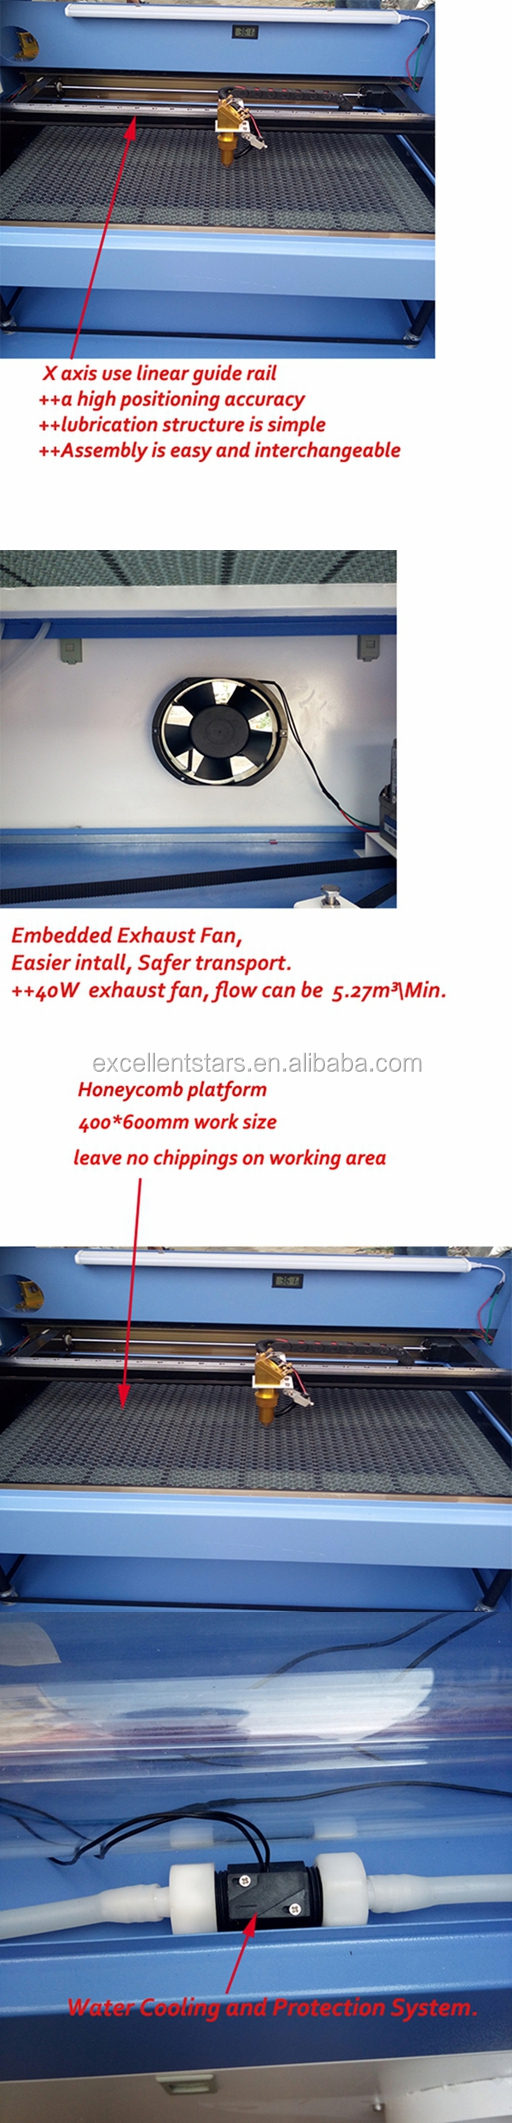 Factory Price Epilog Laser Engraver Laser Cutting Machine For Sale 4060  6040 - Buy Epilog Laser Engraver For Sale,Epilog Laser Engraver,Laser  Engraver